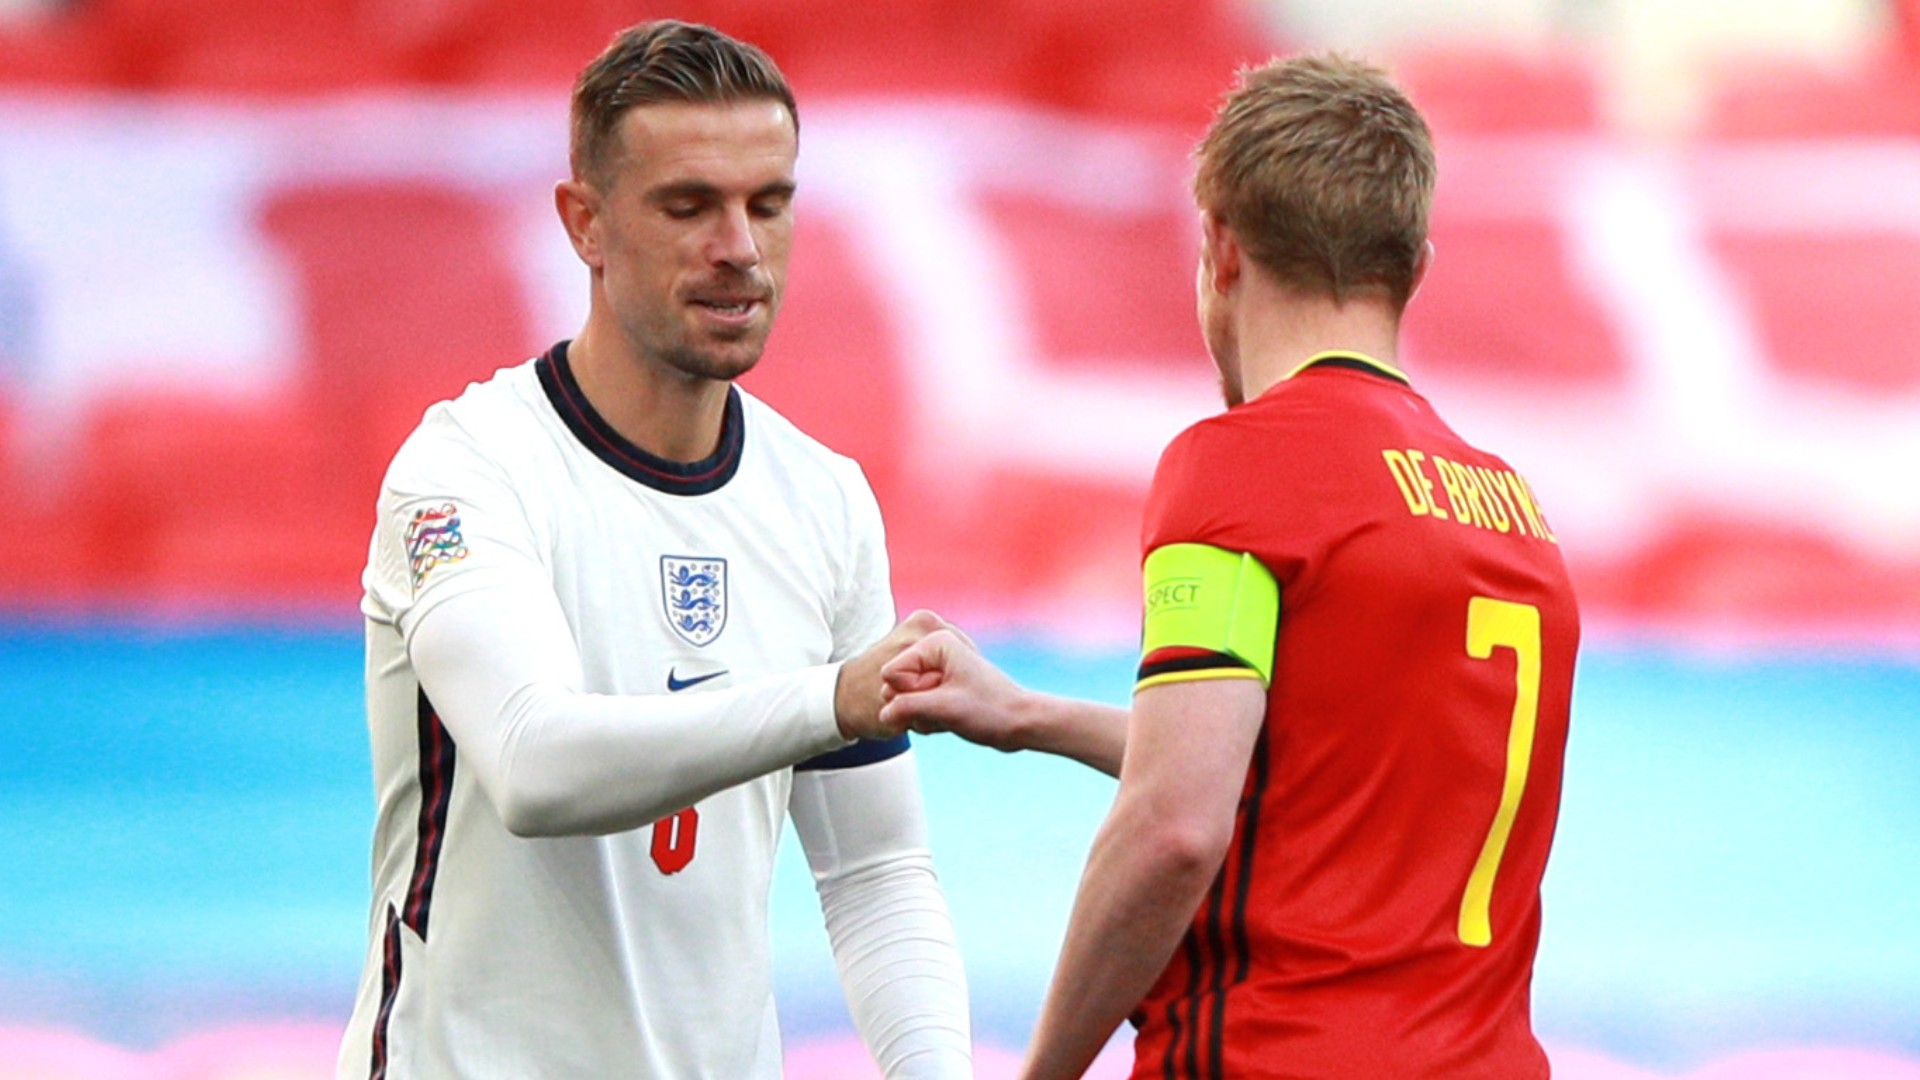 'We want to compete with the very best teams' - Henderson ...